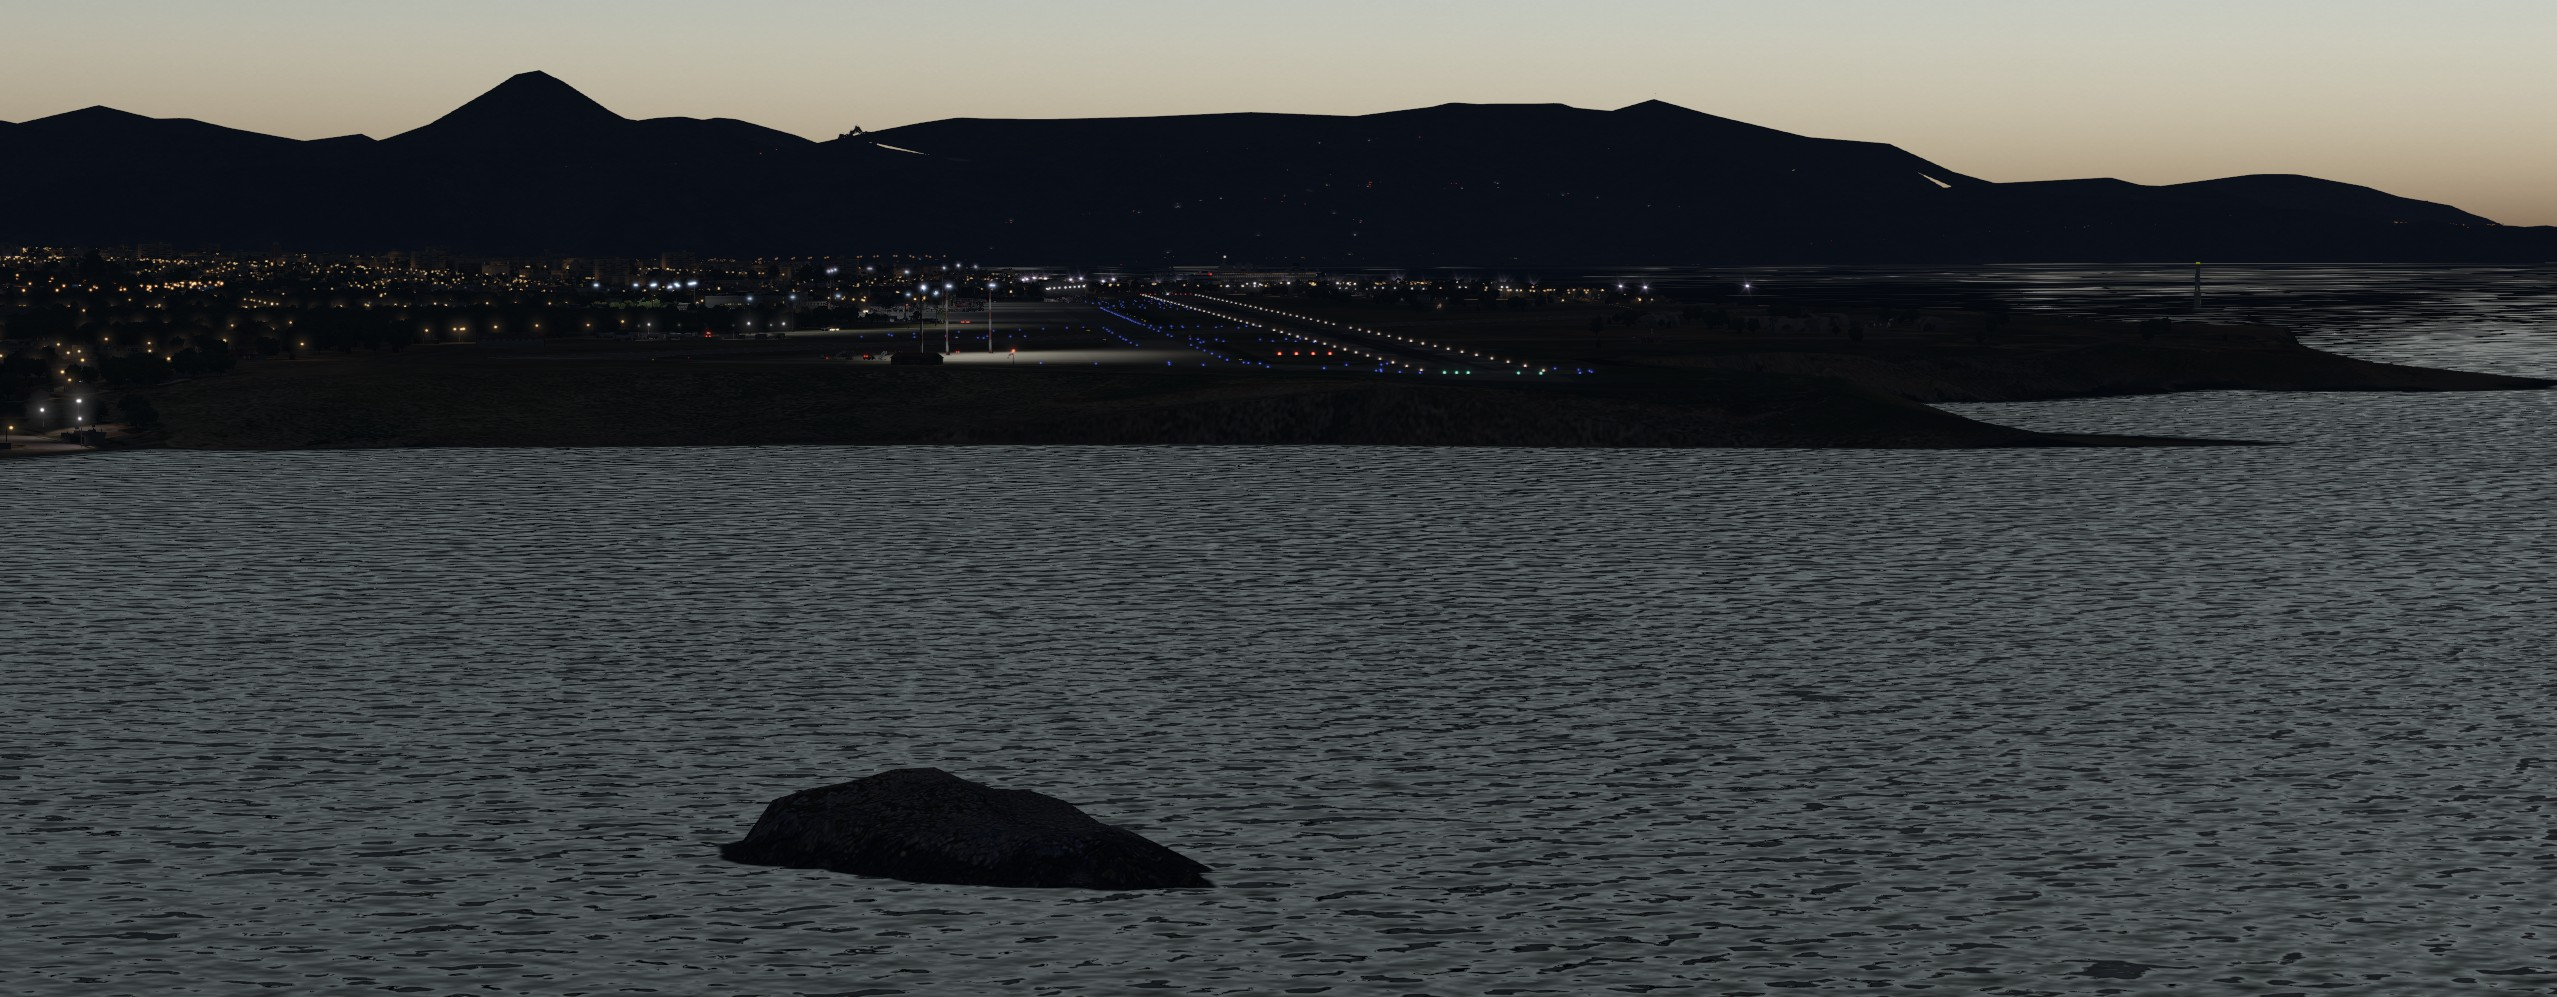 JUSTSIM - HERAKLION INTERNATIONAL AIRPORT X-PLANE 11